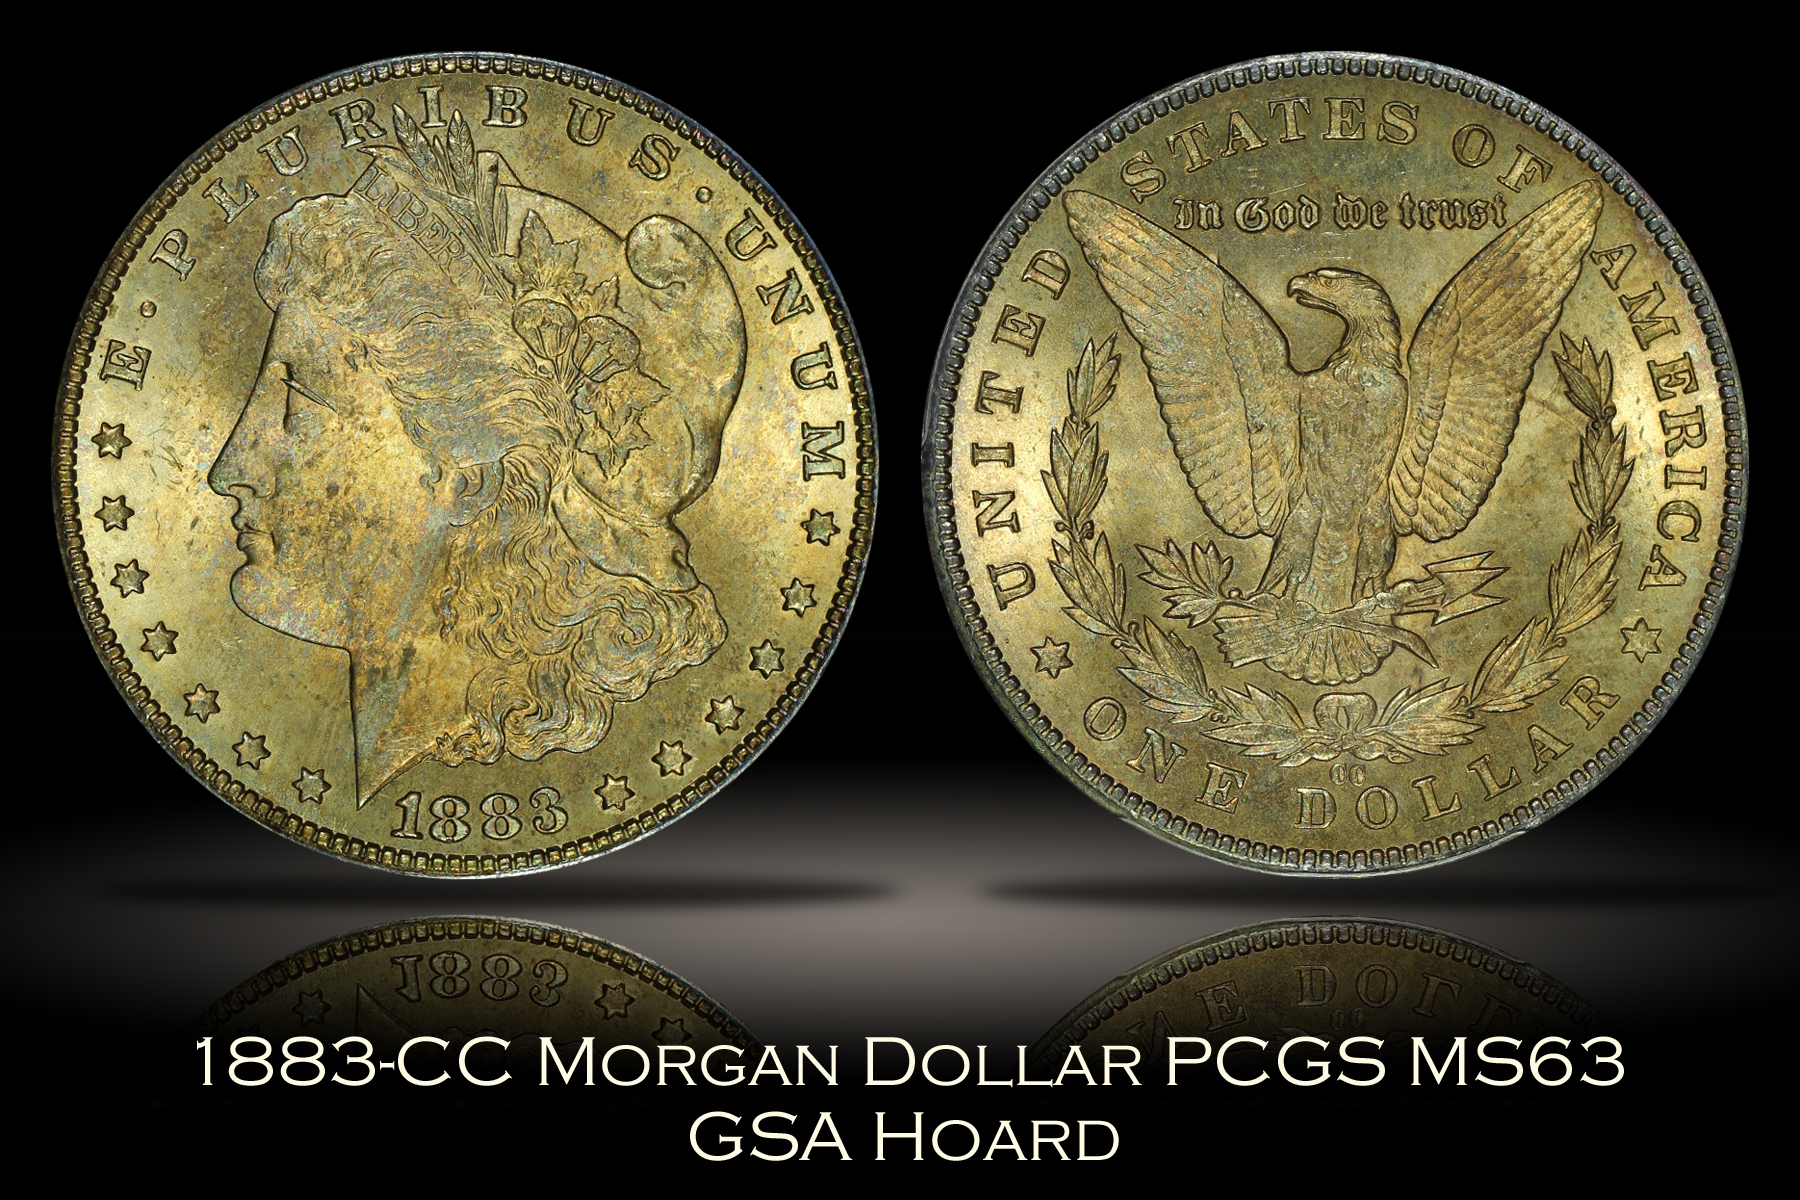 1883-CC Morgan Dollar PCGS MS63 GSA Hoard